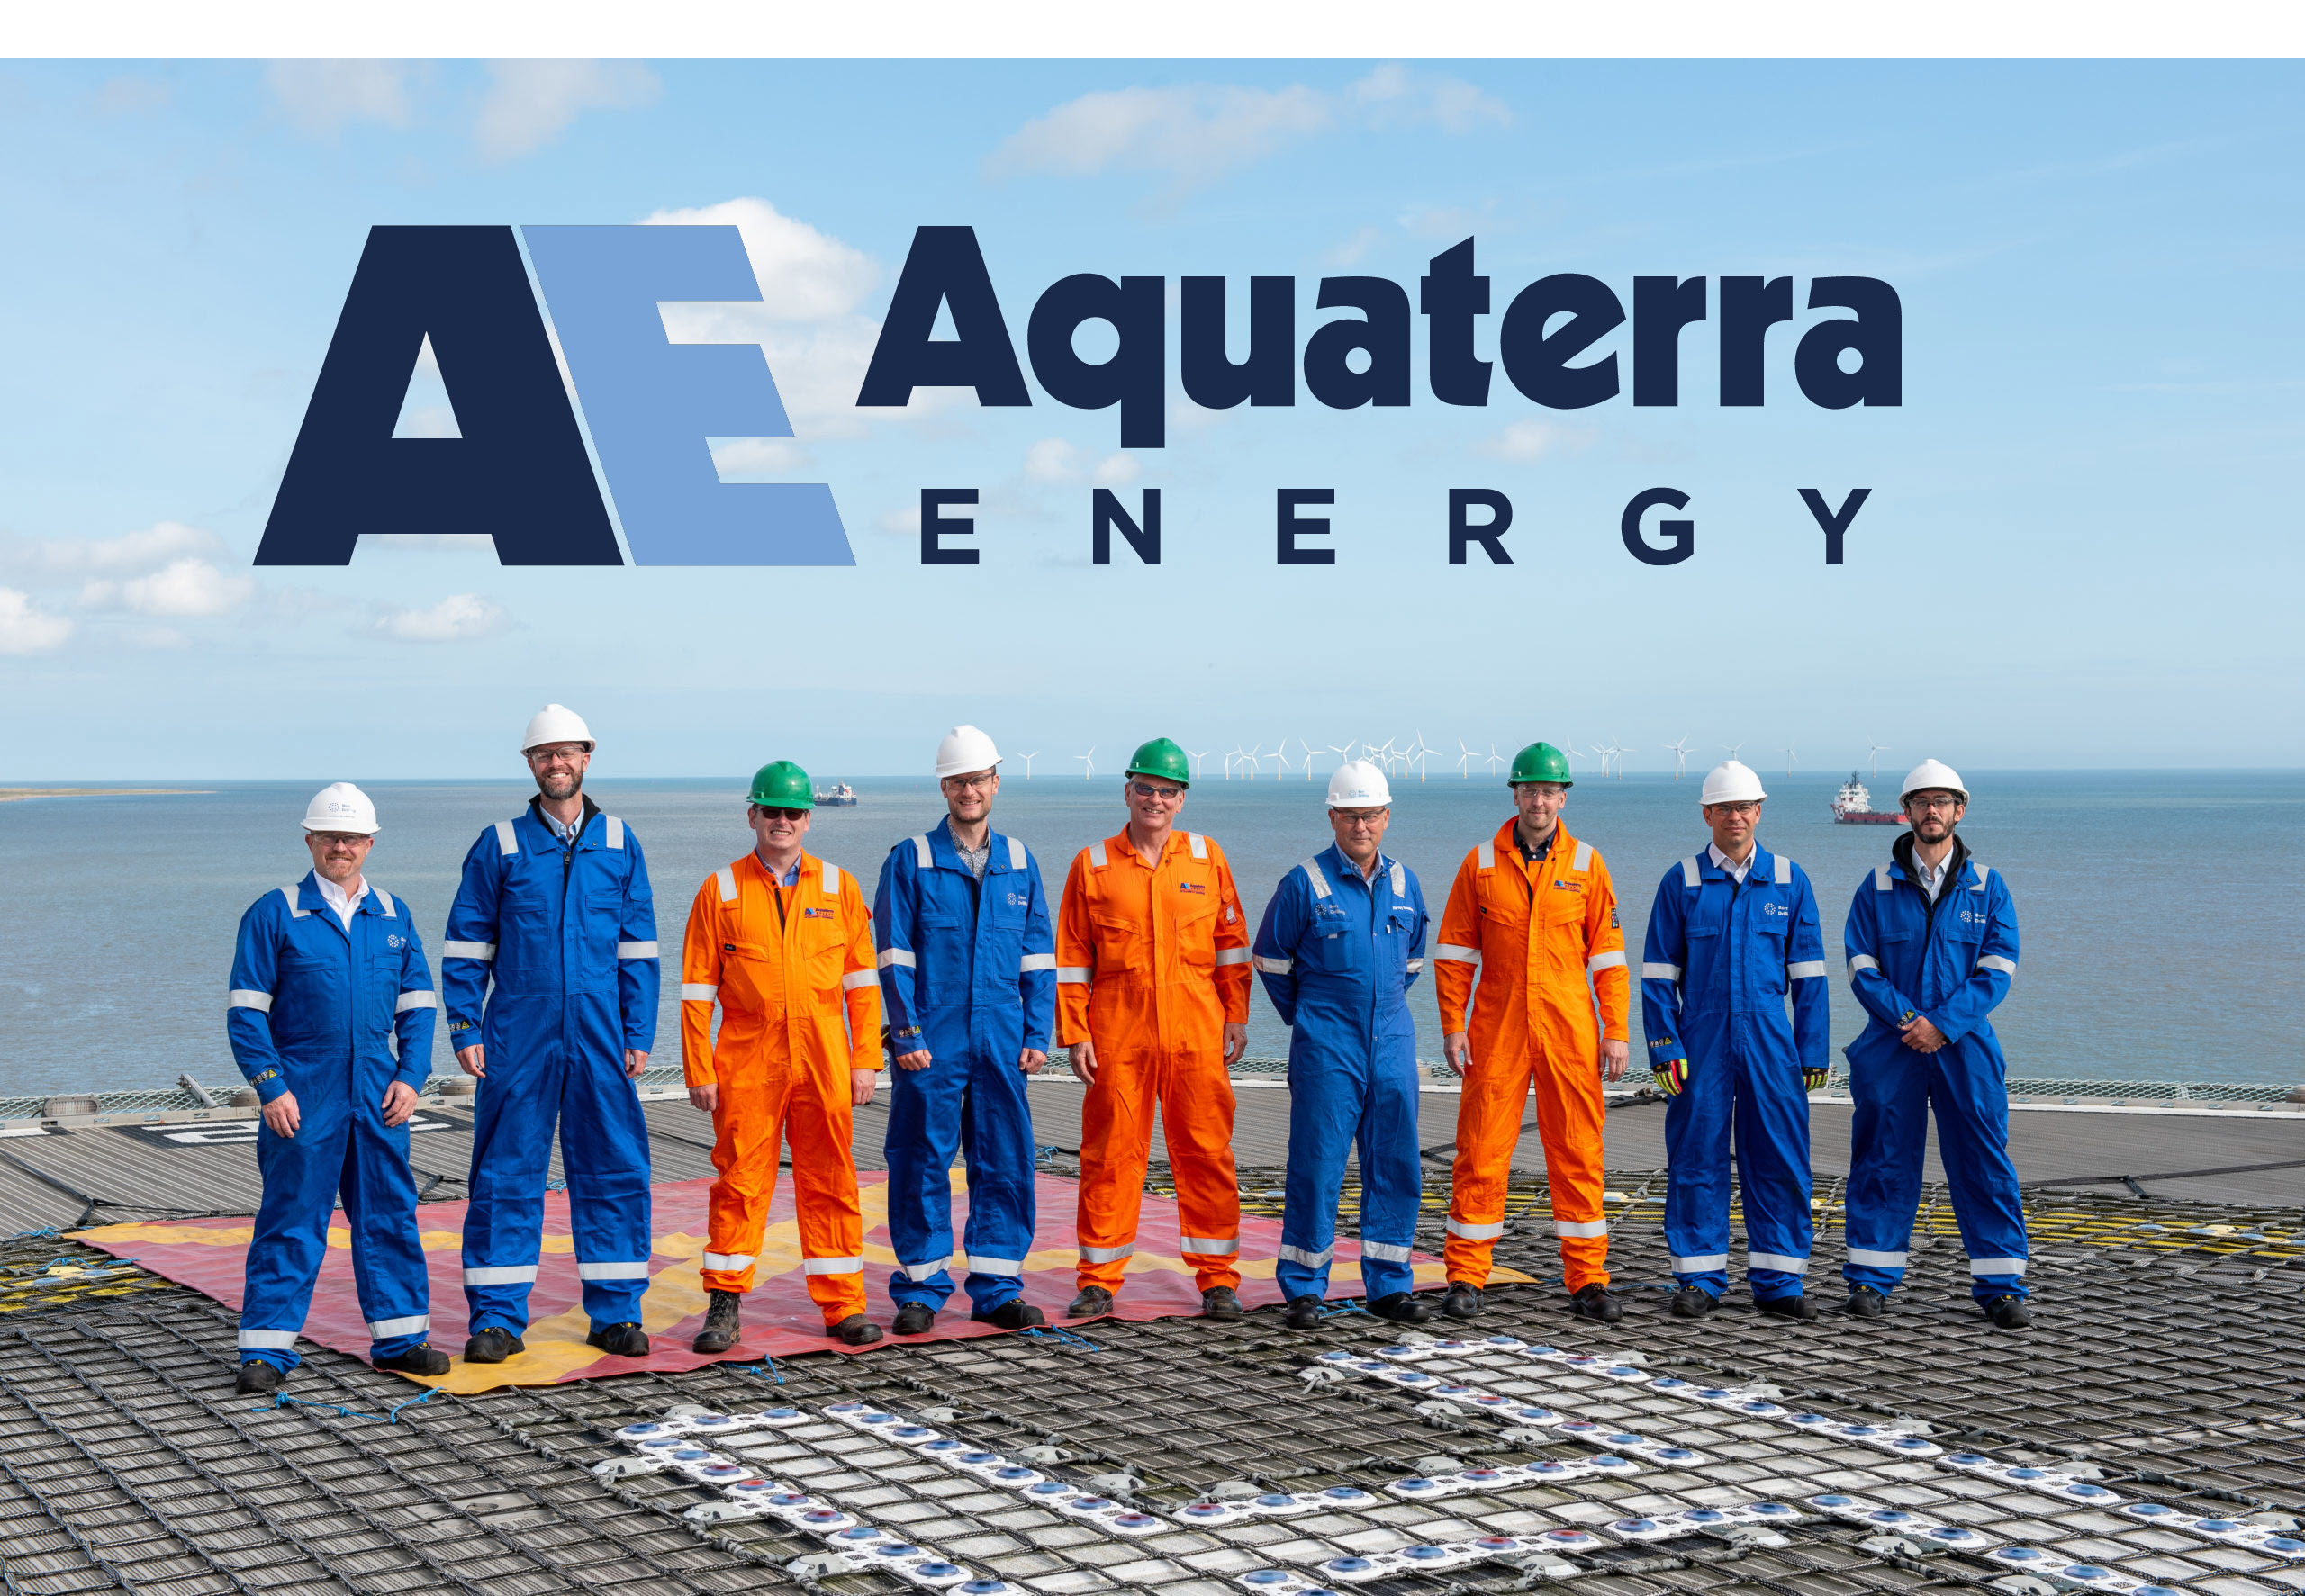 Aquaterra Energy Lhyfe and Borr Drilling form partnership for pioneering offshore green hydrogen jack up rig production concept